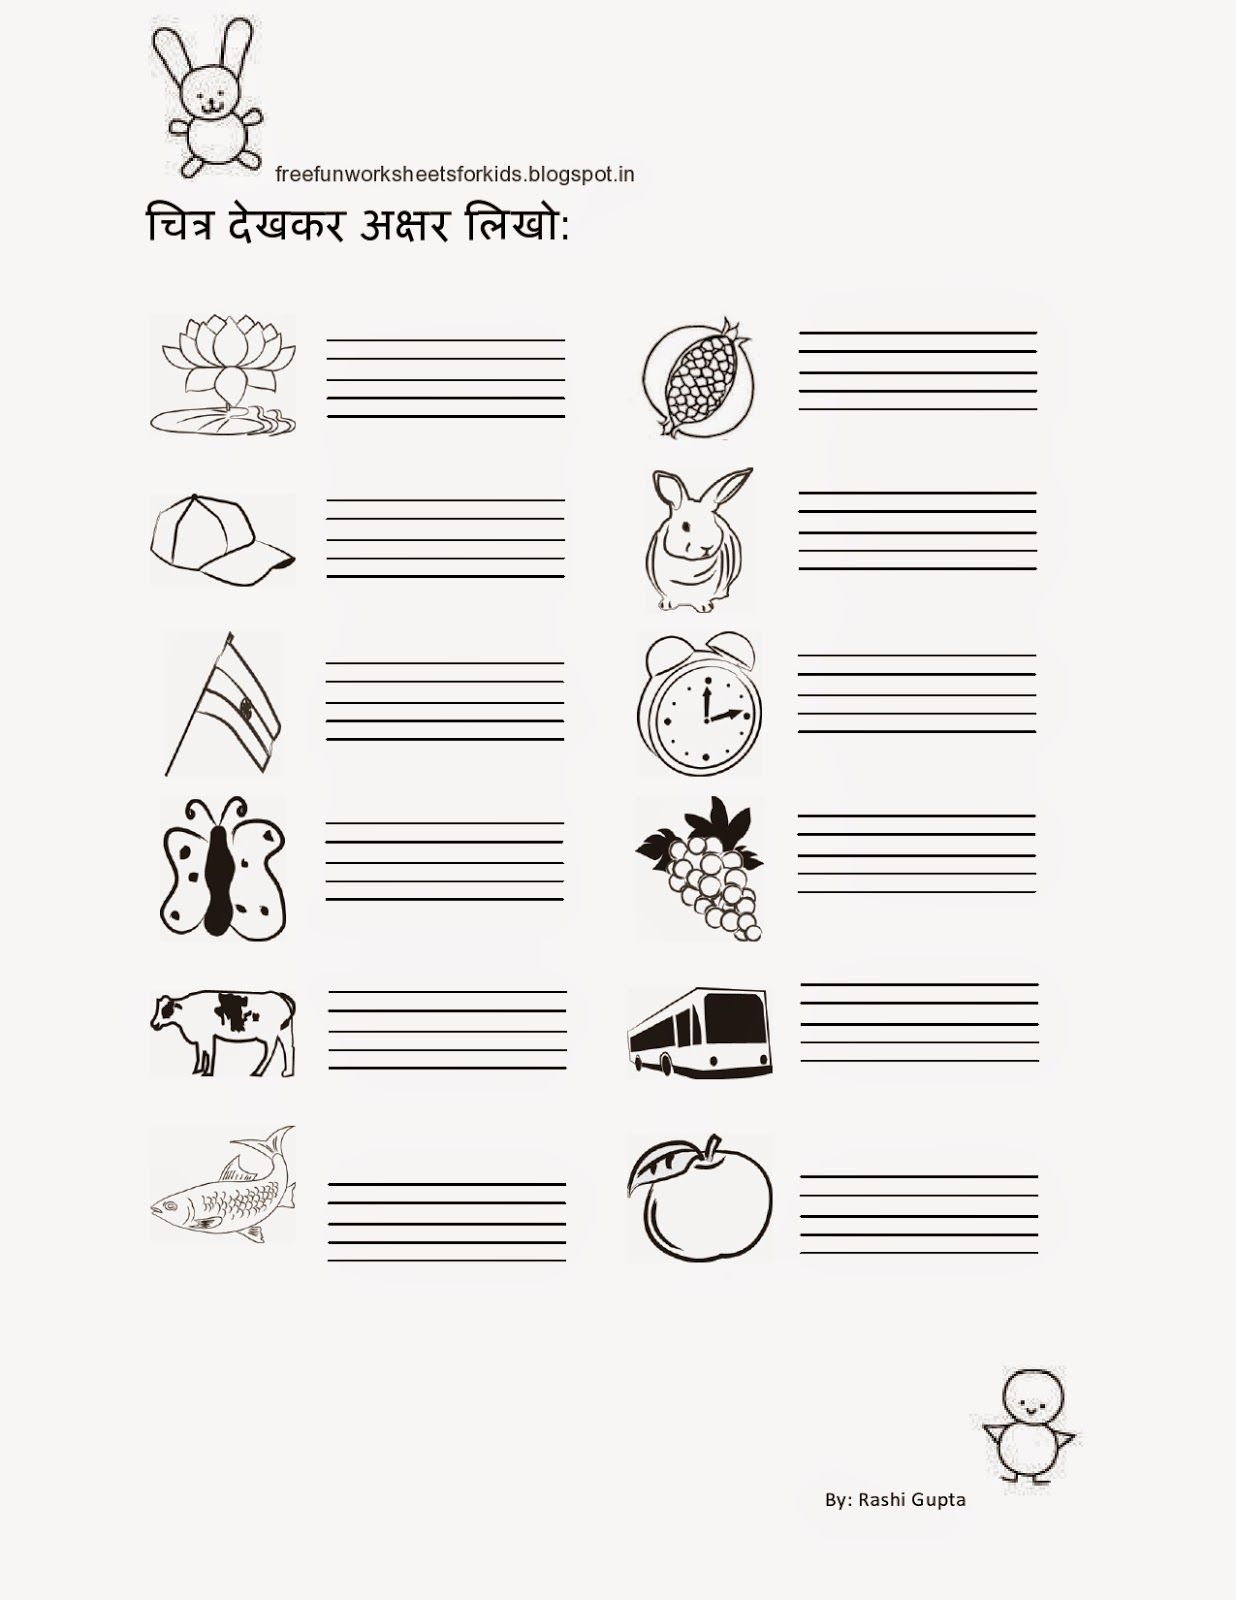 Free Worksheet Hindi Worksheets free fun worksheets for kids printable hindi class kg